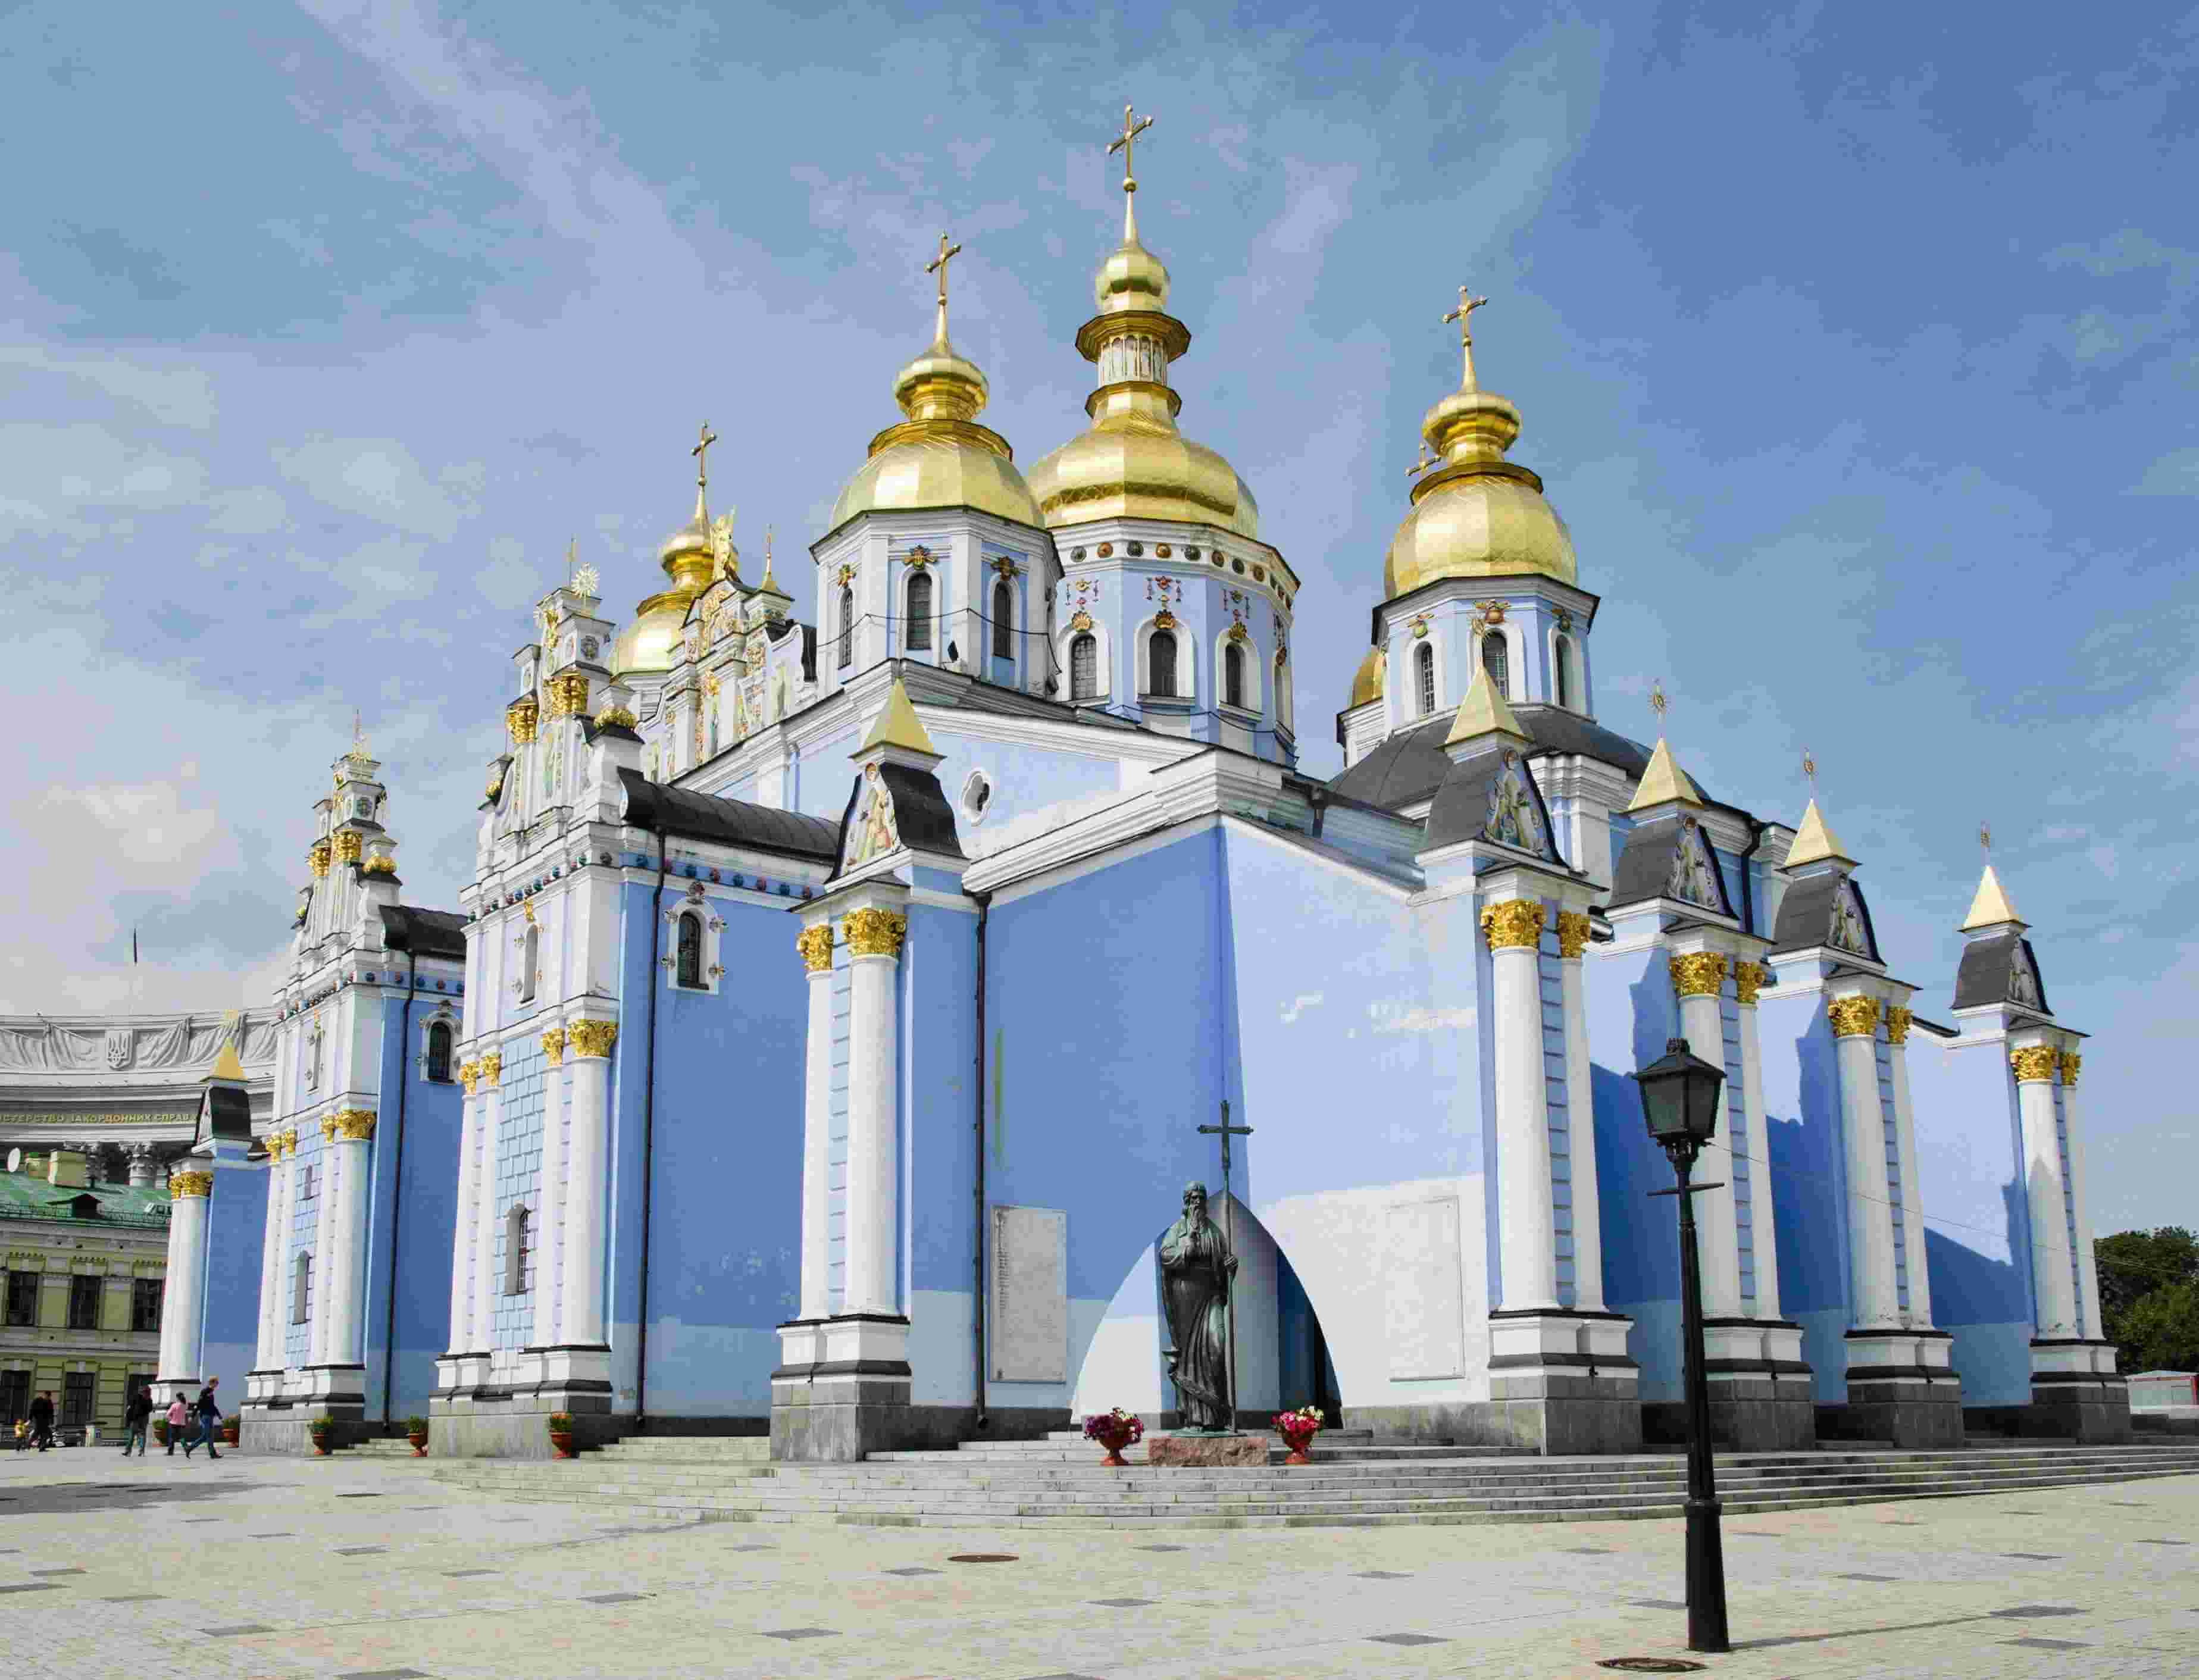 7-Day Classical Ukraine Tour from Kiev